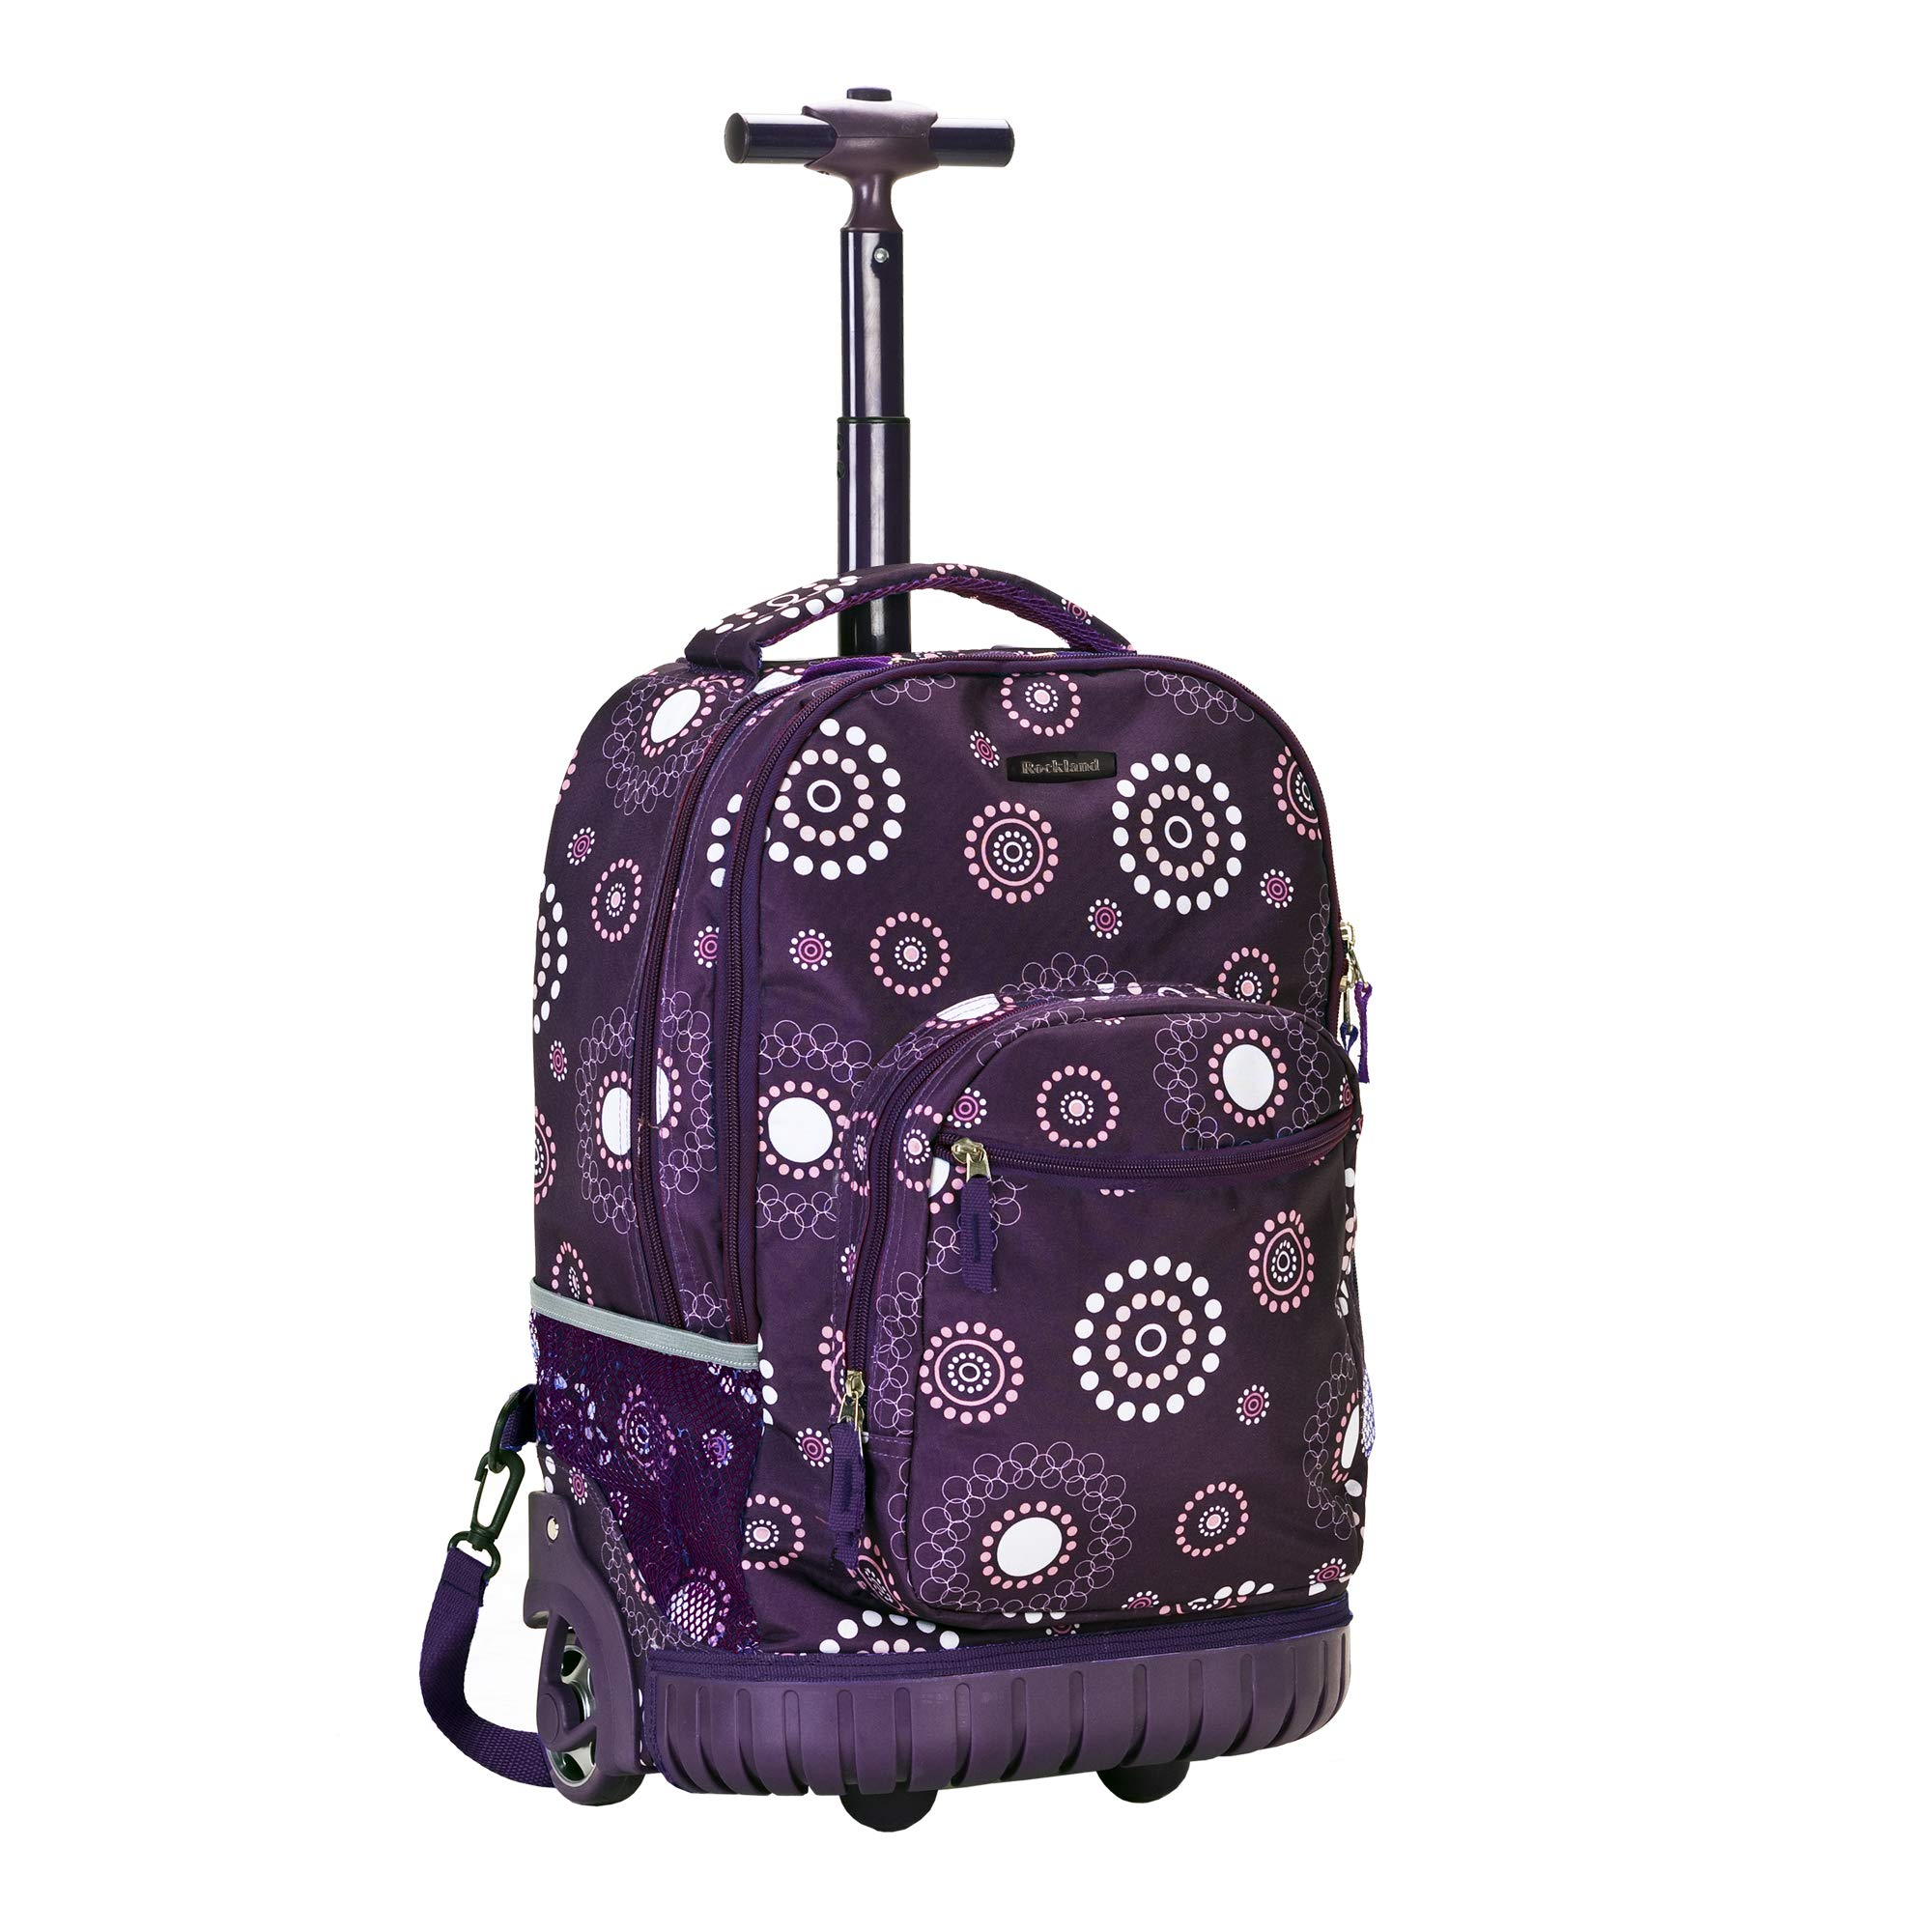 Rockland Luggage Rolling Backpack Printed